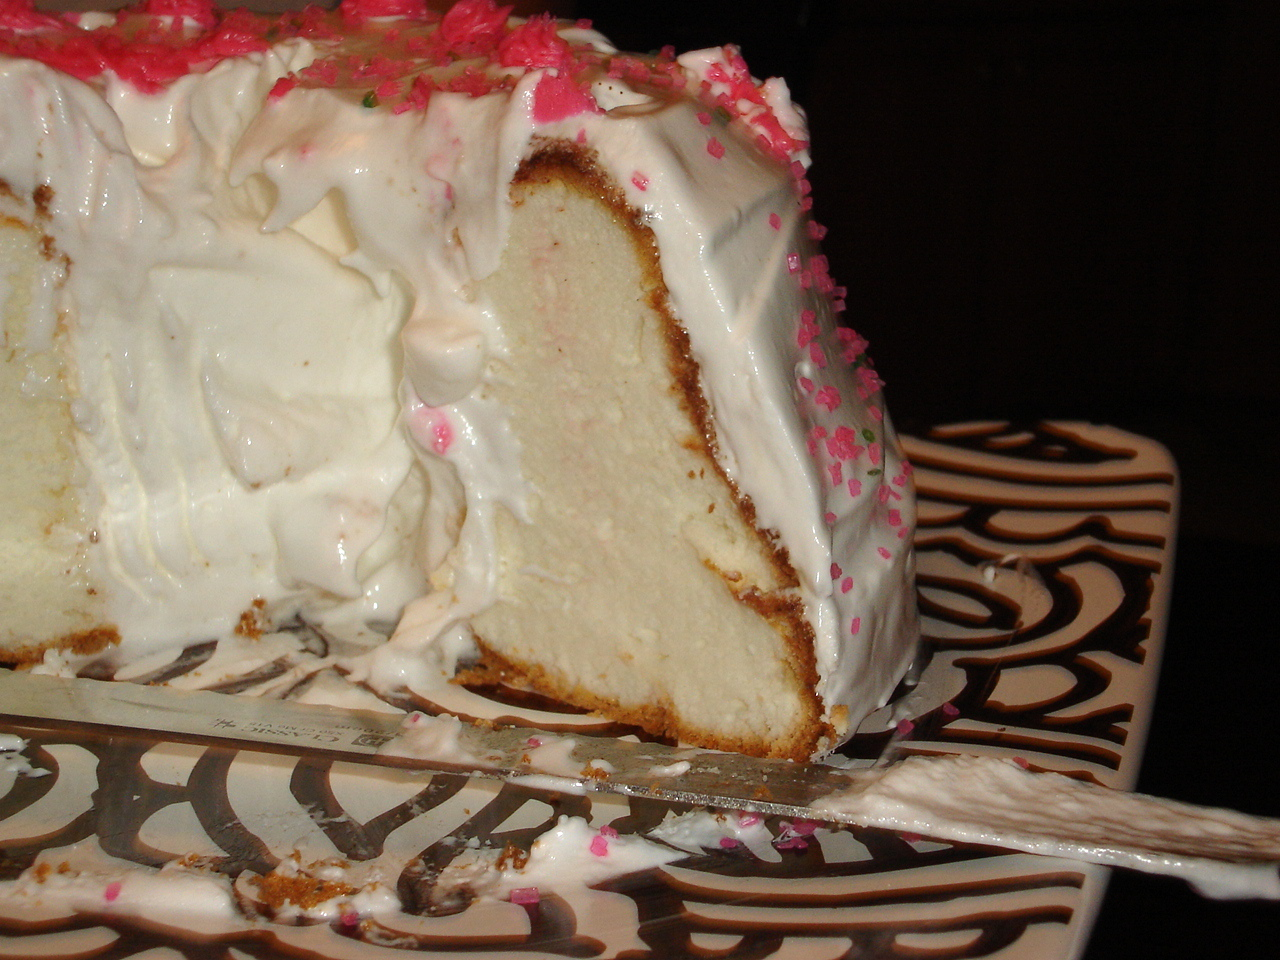 Cake Recipes With Glaze Icing: Angel Food Cake With 7-Minute Icing